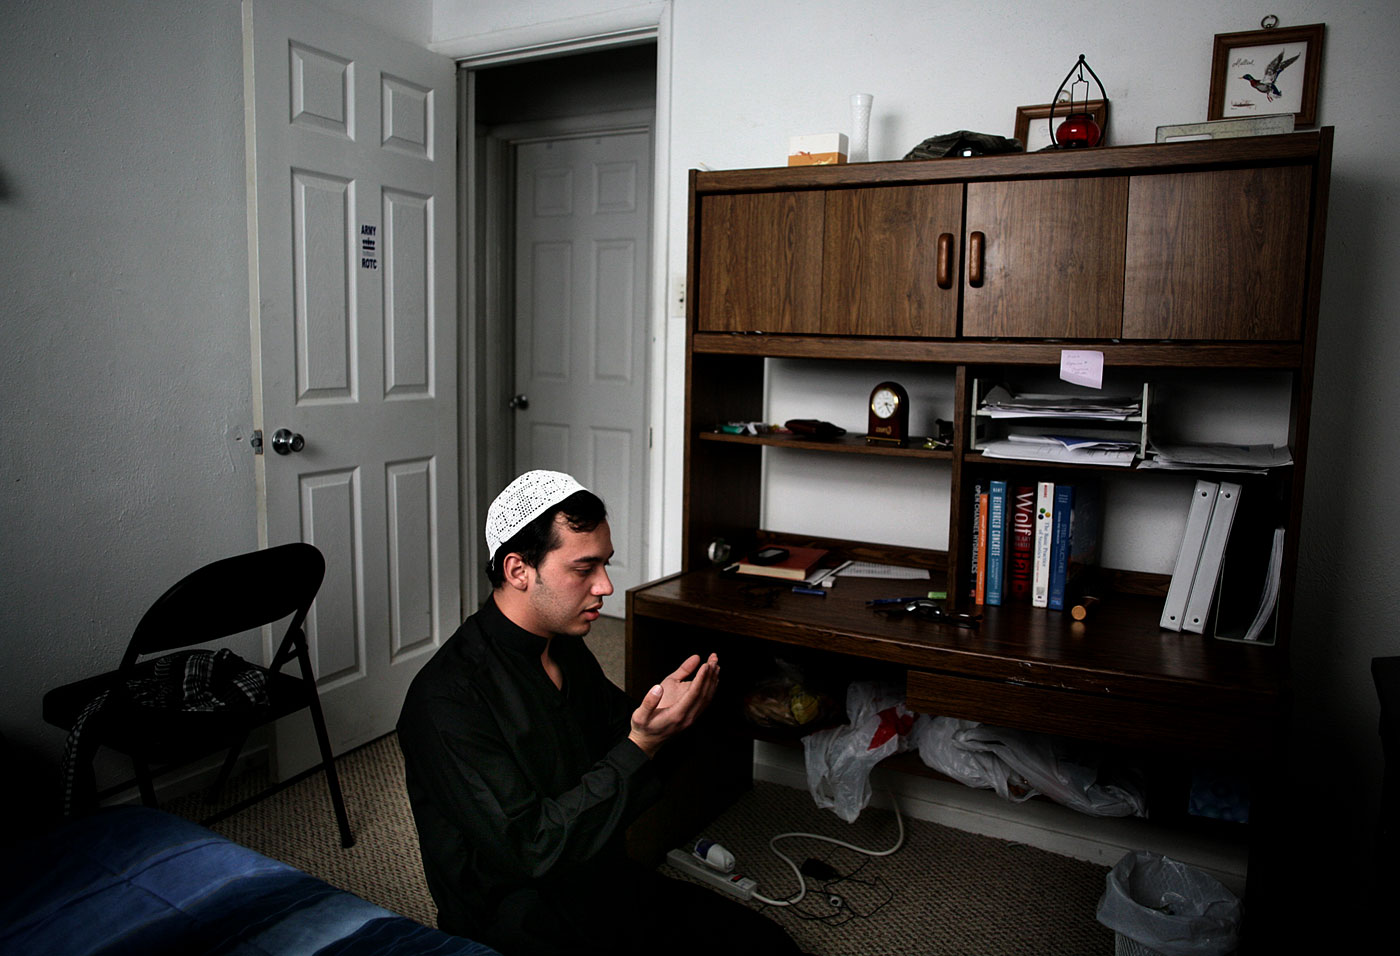 "Sulaiman Banwal, 24,  opens the door to his bedroom and slips on his white prayer cap. He unfurls a prayer rug and bends bedside to the floor. He's wearing in a black perahan tunban, the traditional garb of Afghan men. He faces a wall draped with inspirational Islamic sayings.The silence is broken by the rustle of his clothing as he bows prostrate. Somewhere in the distance is Mecca.""Praying is a responsibility for every Muslim,"" said Banwal, who, despite living 7,000 miles from home, still prays five times a day. He is a Fulbright Scholar from Kabul, Afghanistan. He attends Old Dominion University and is earning a master's degree in civil engineering.He believes that praying to Allah helps him with his daily life. ""In our religion you never lose hope, because losing hope means you're not believing in God anymore.{quote}{quote}You feel like home, you don't feel alone,"" he said of the call to prayer. ""You're never alone, because God is with you."""